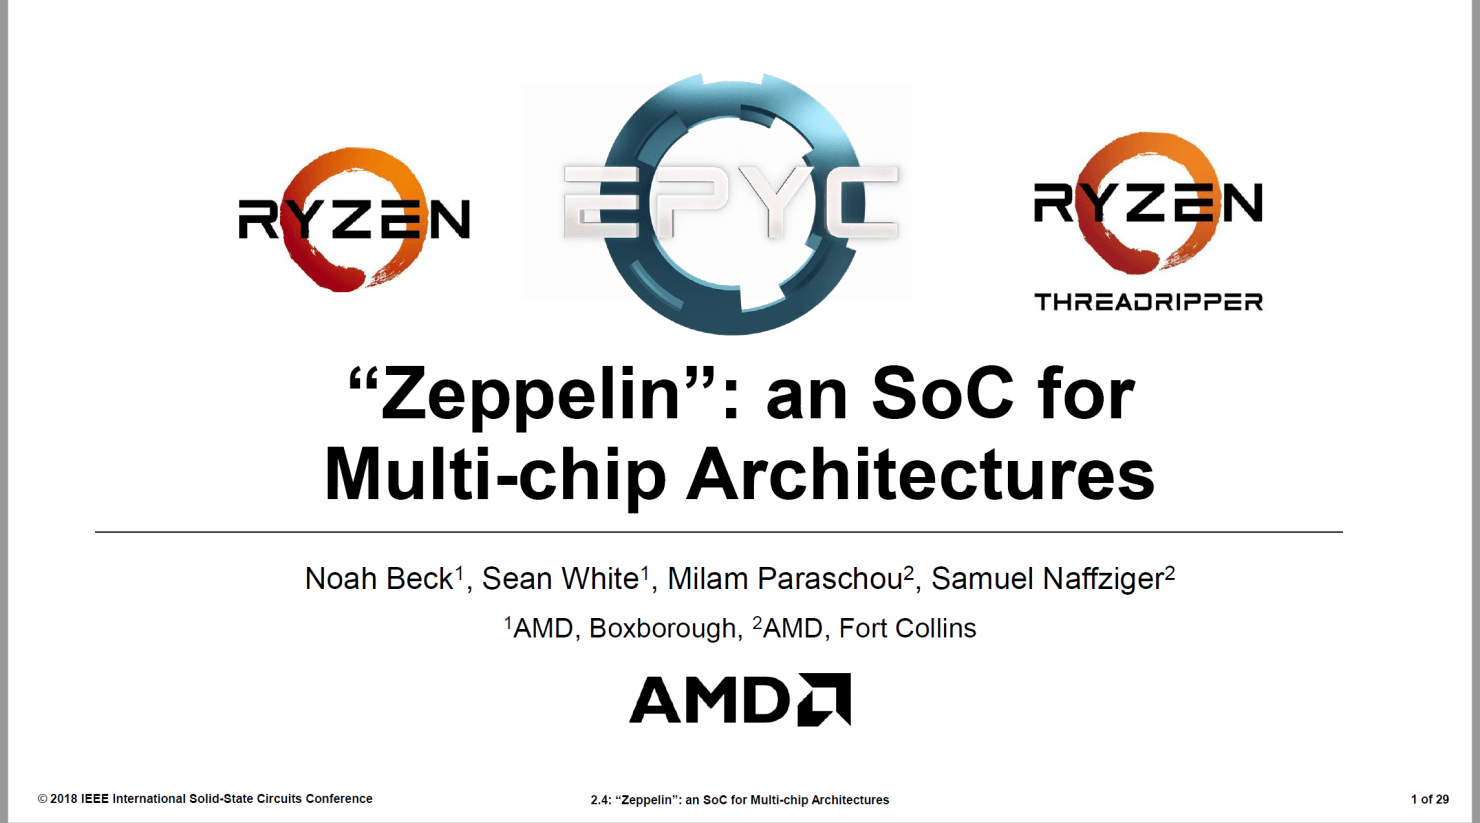 AMD-ISSCC-Zeppelin-Zen-EPYC-Threadripper-Ryzen_1